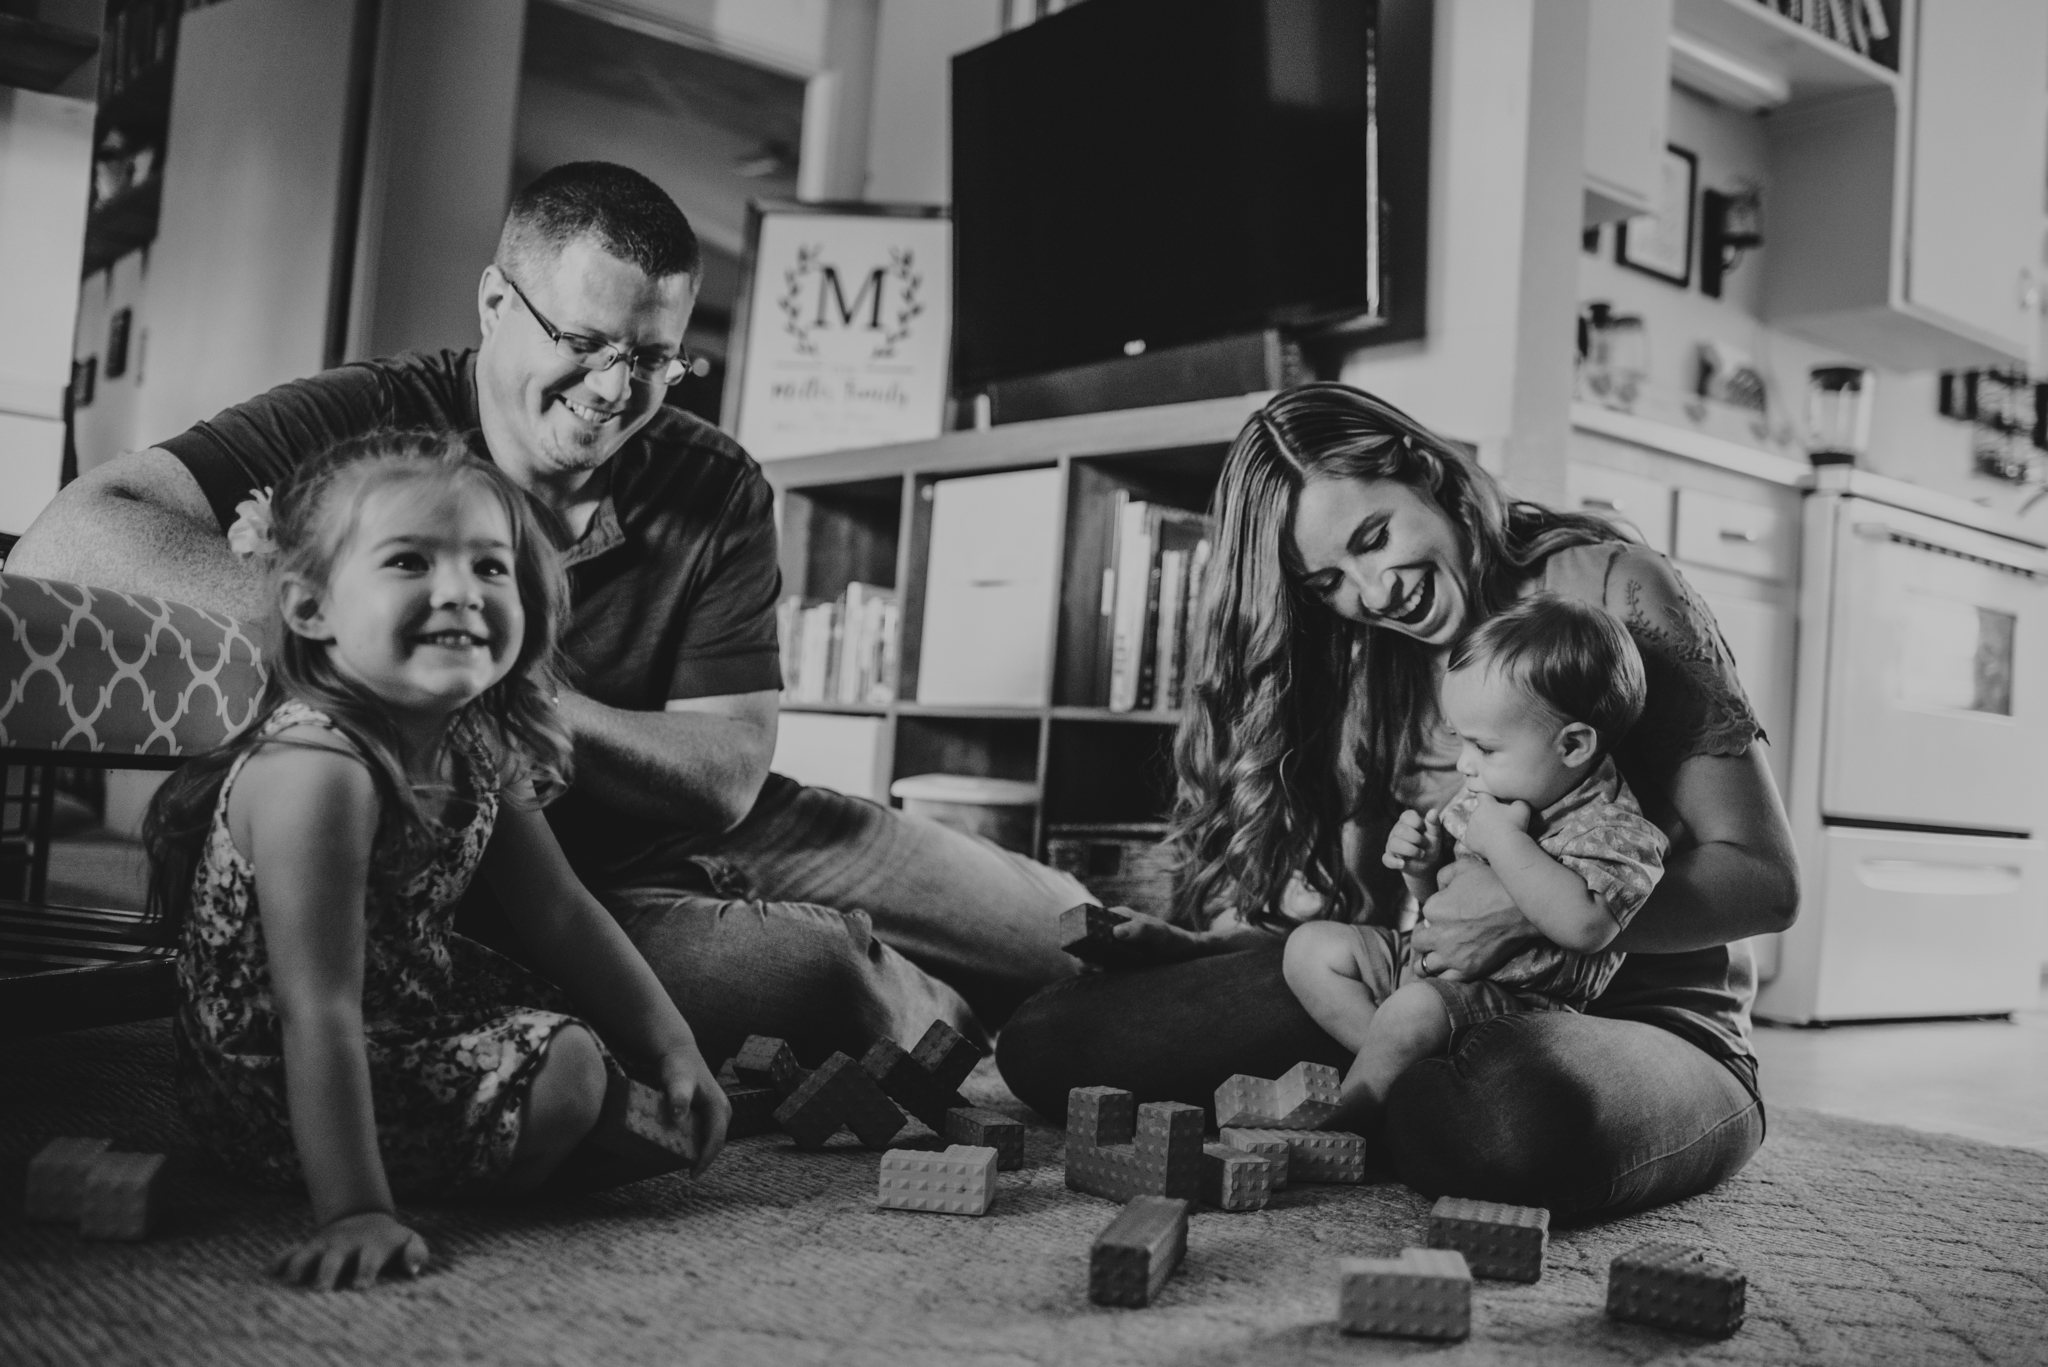 The family knocks over block towers together in the living room during their lifestyle session at home in Wake Forest with Rose Trail Images.